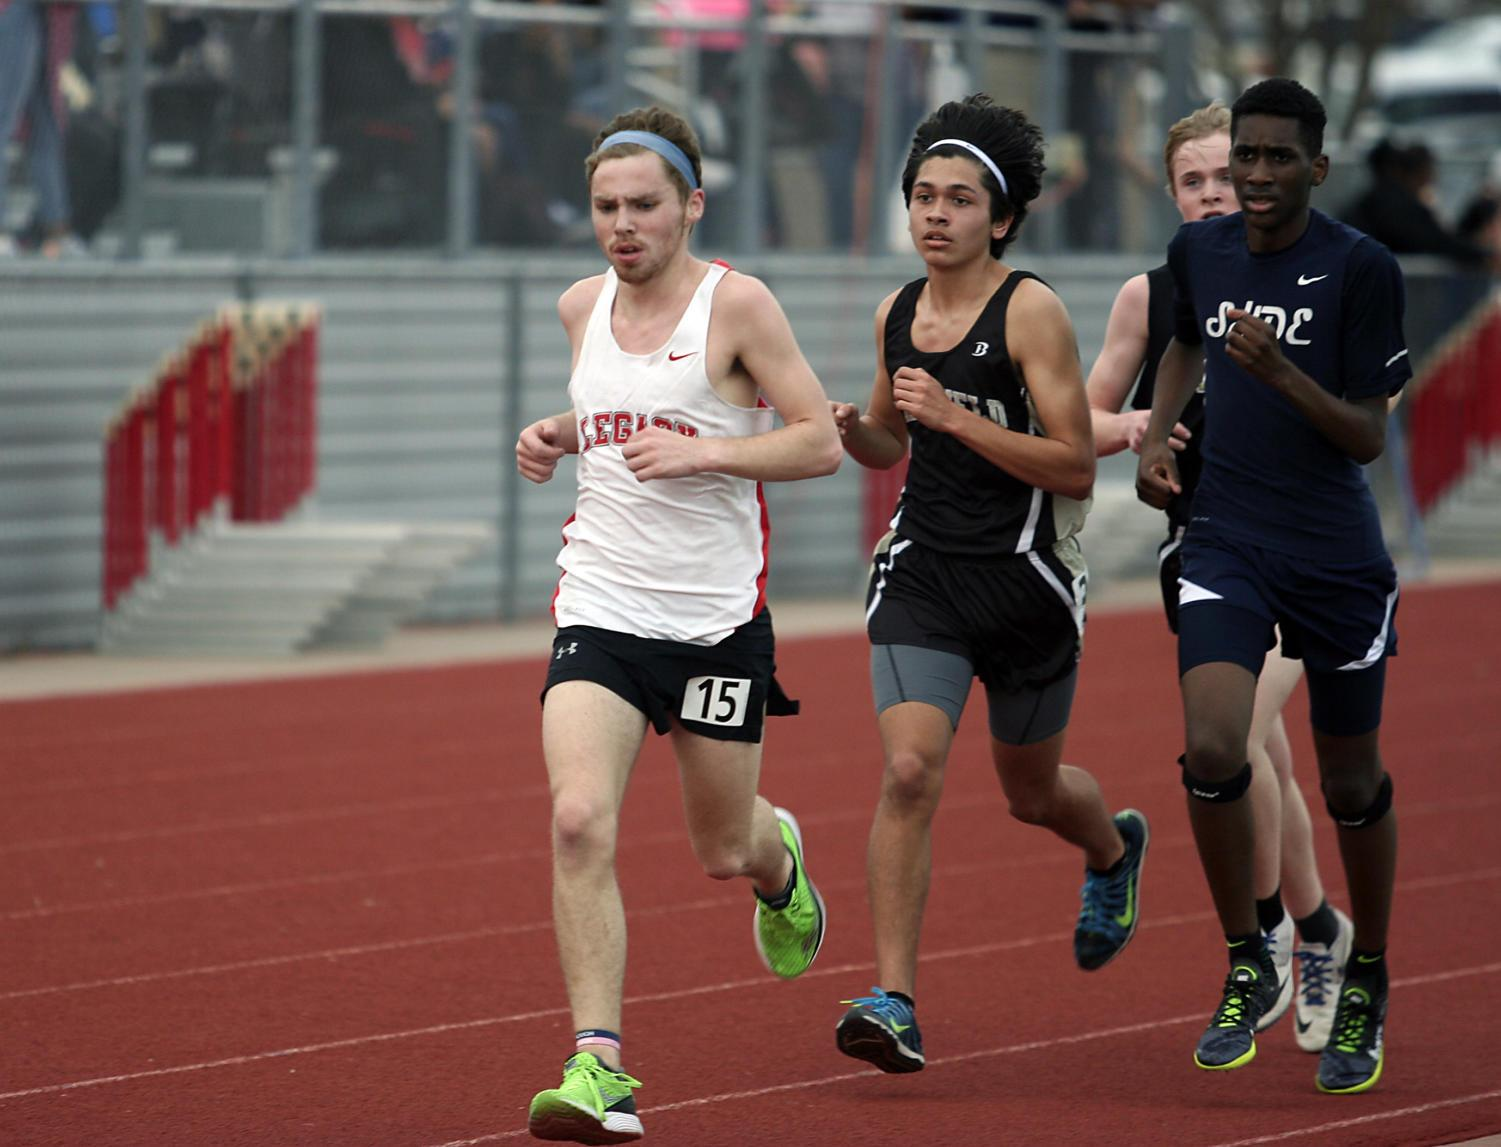 Senior Sam Troutt competes in a track meet.